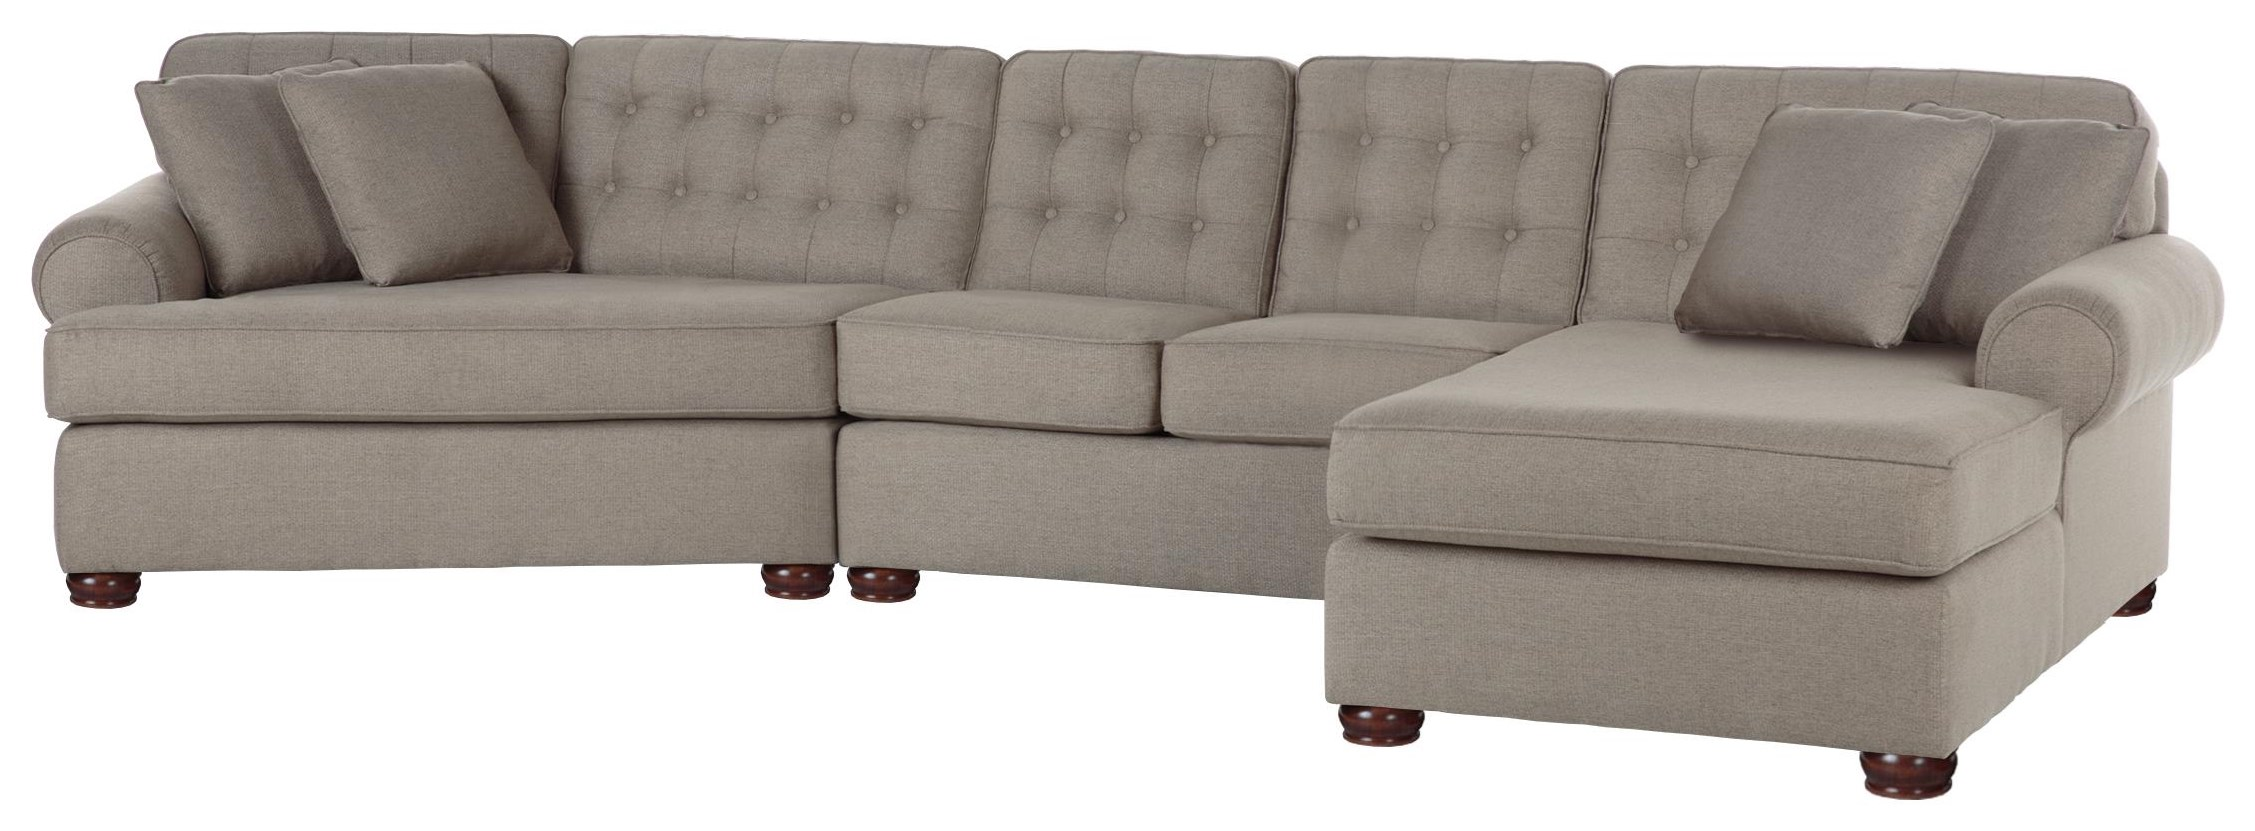 Just Your Style Sectional by Justice Furniture & Bedding at Crowley Furniture & Mattress